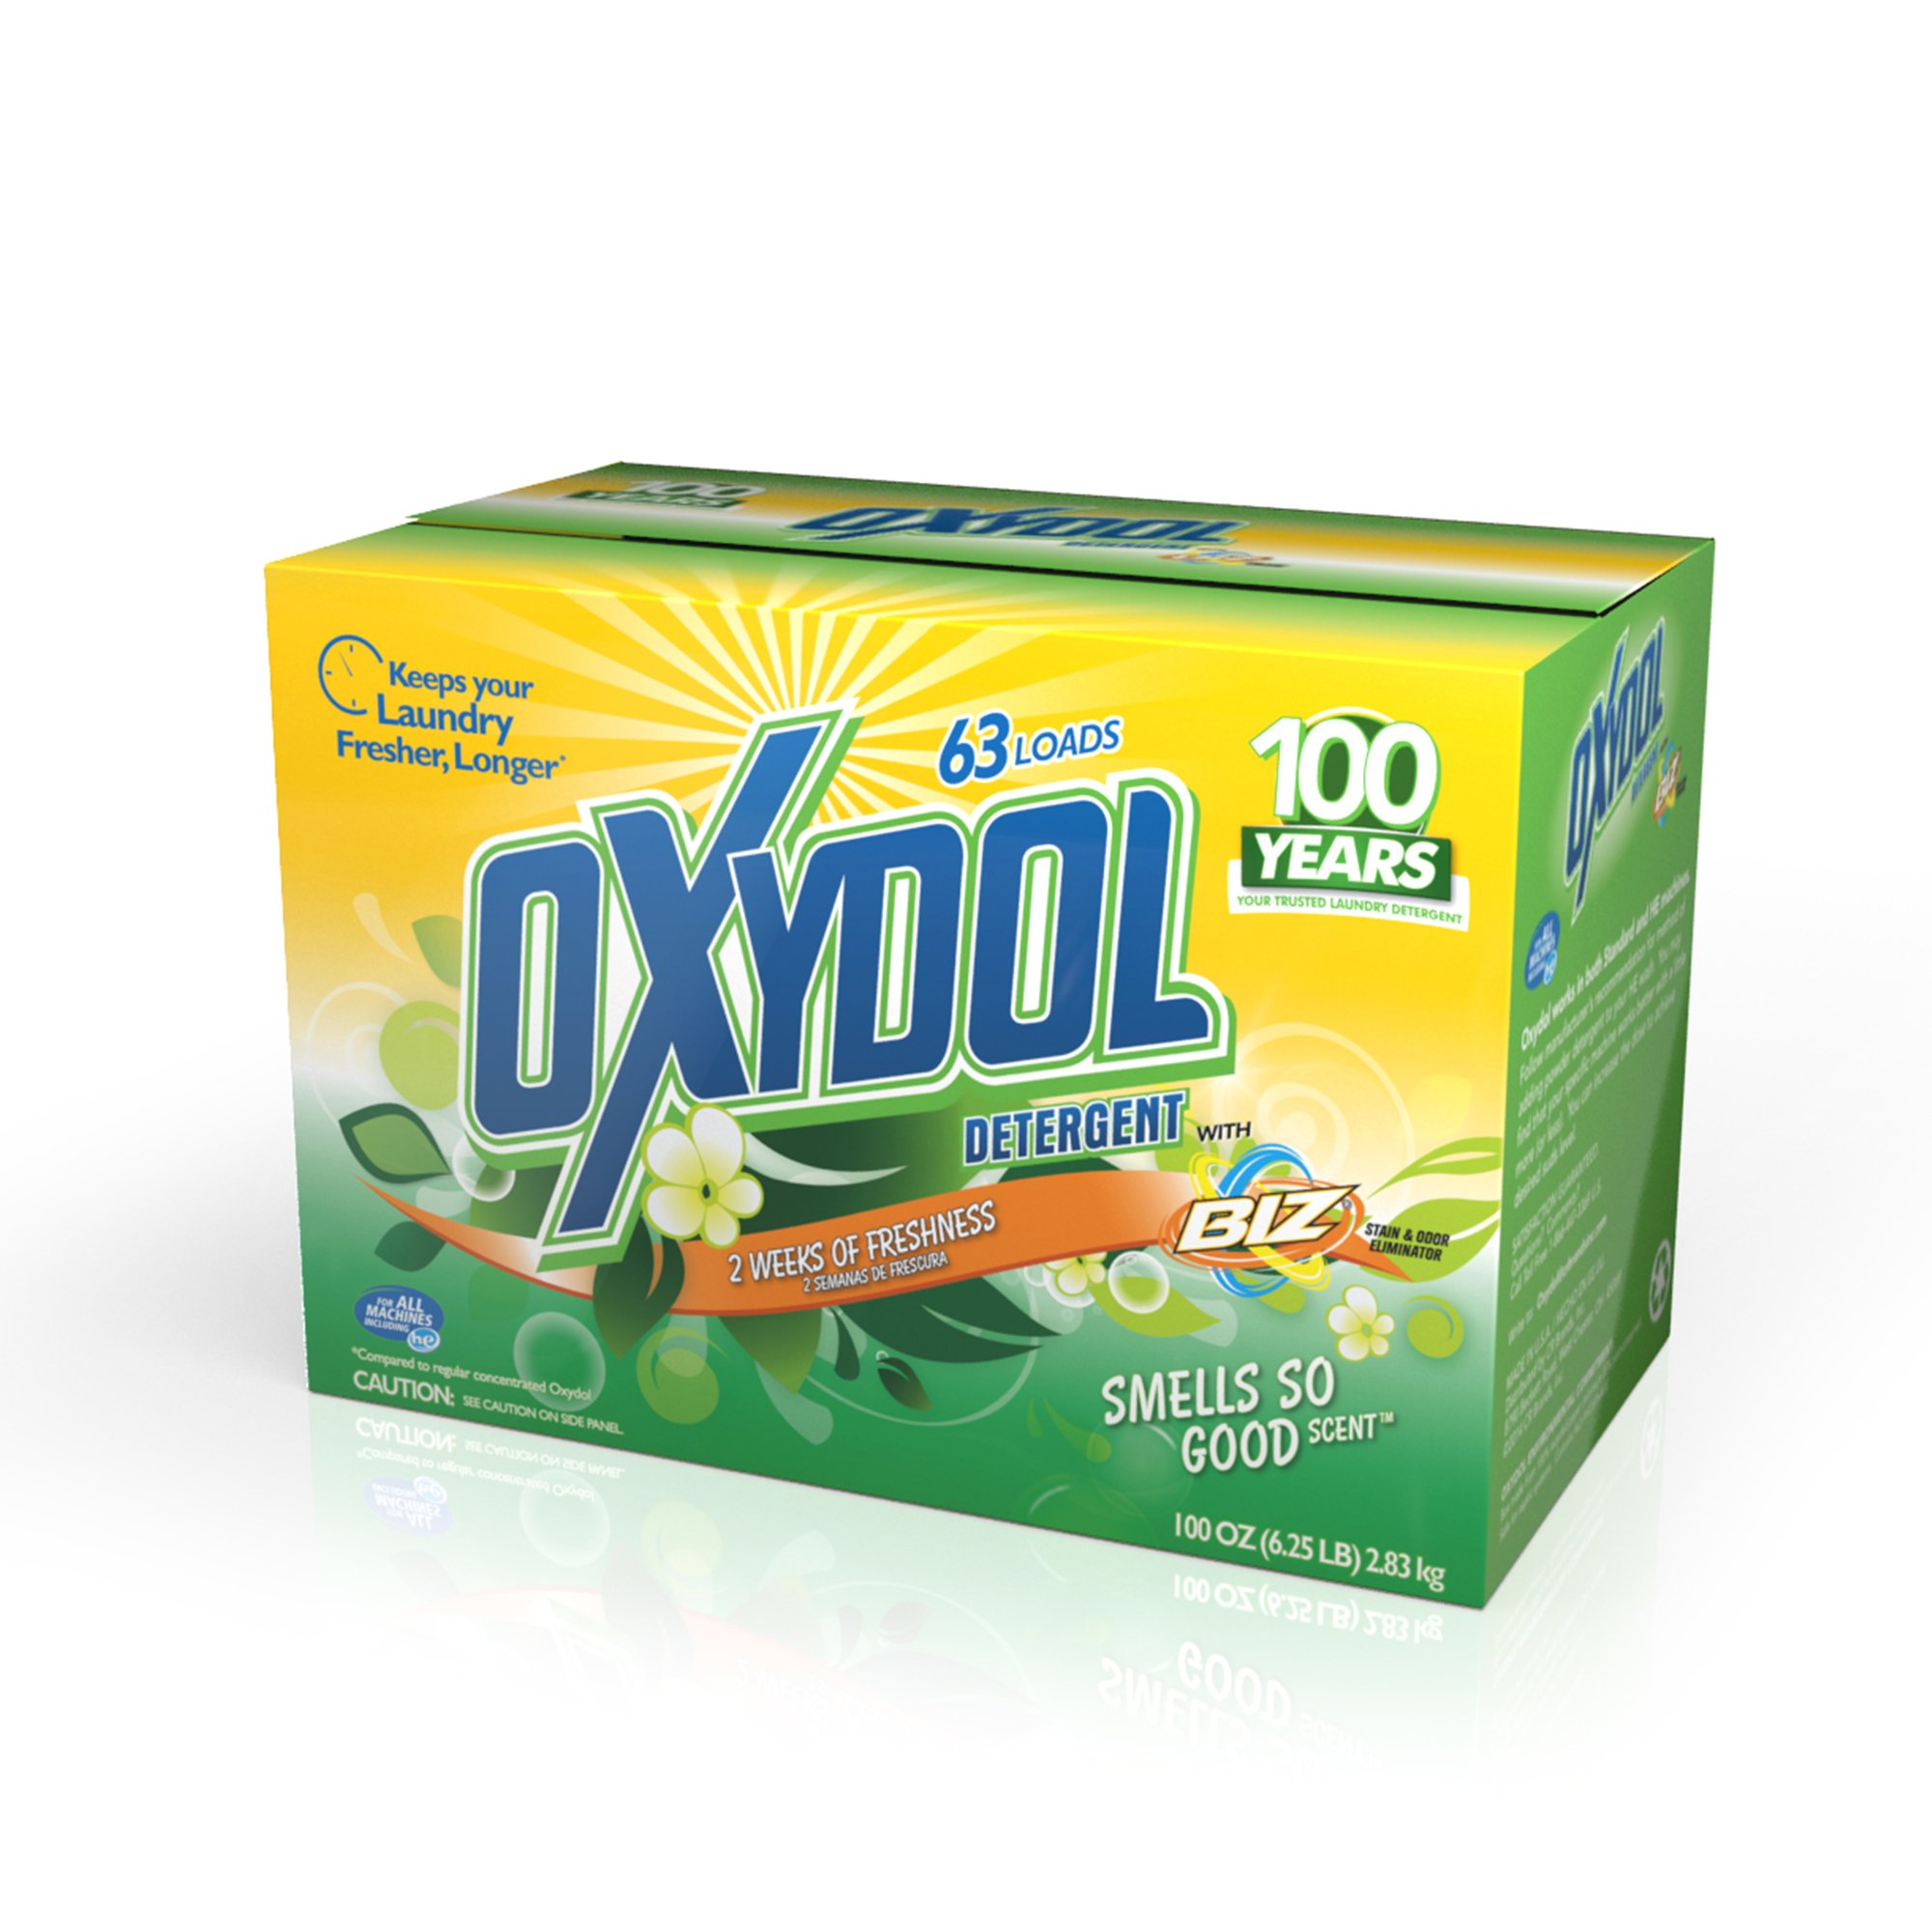 Oxydol Laundry Detergent - Smells So Good Scent (100 oz.) by Oxydol